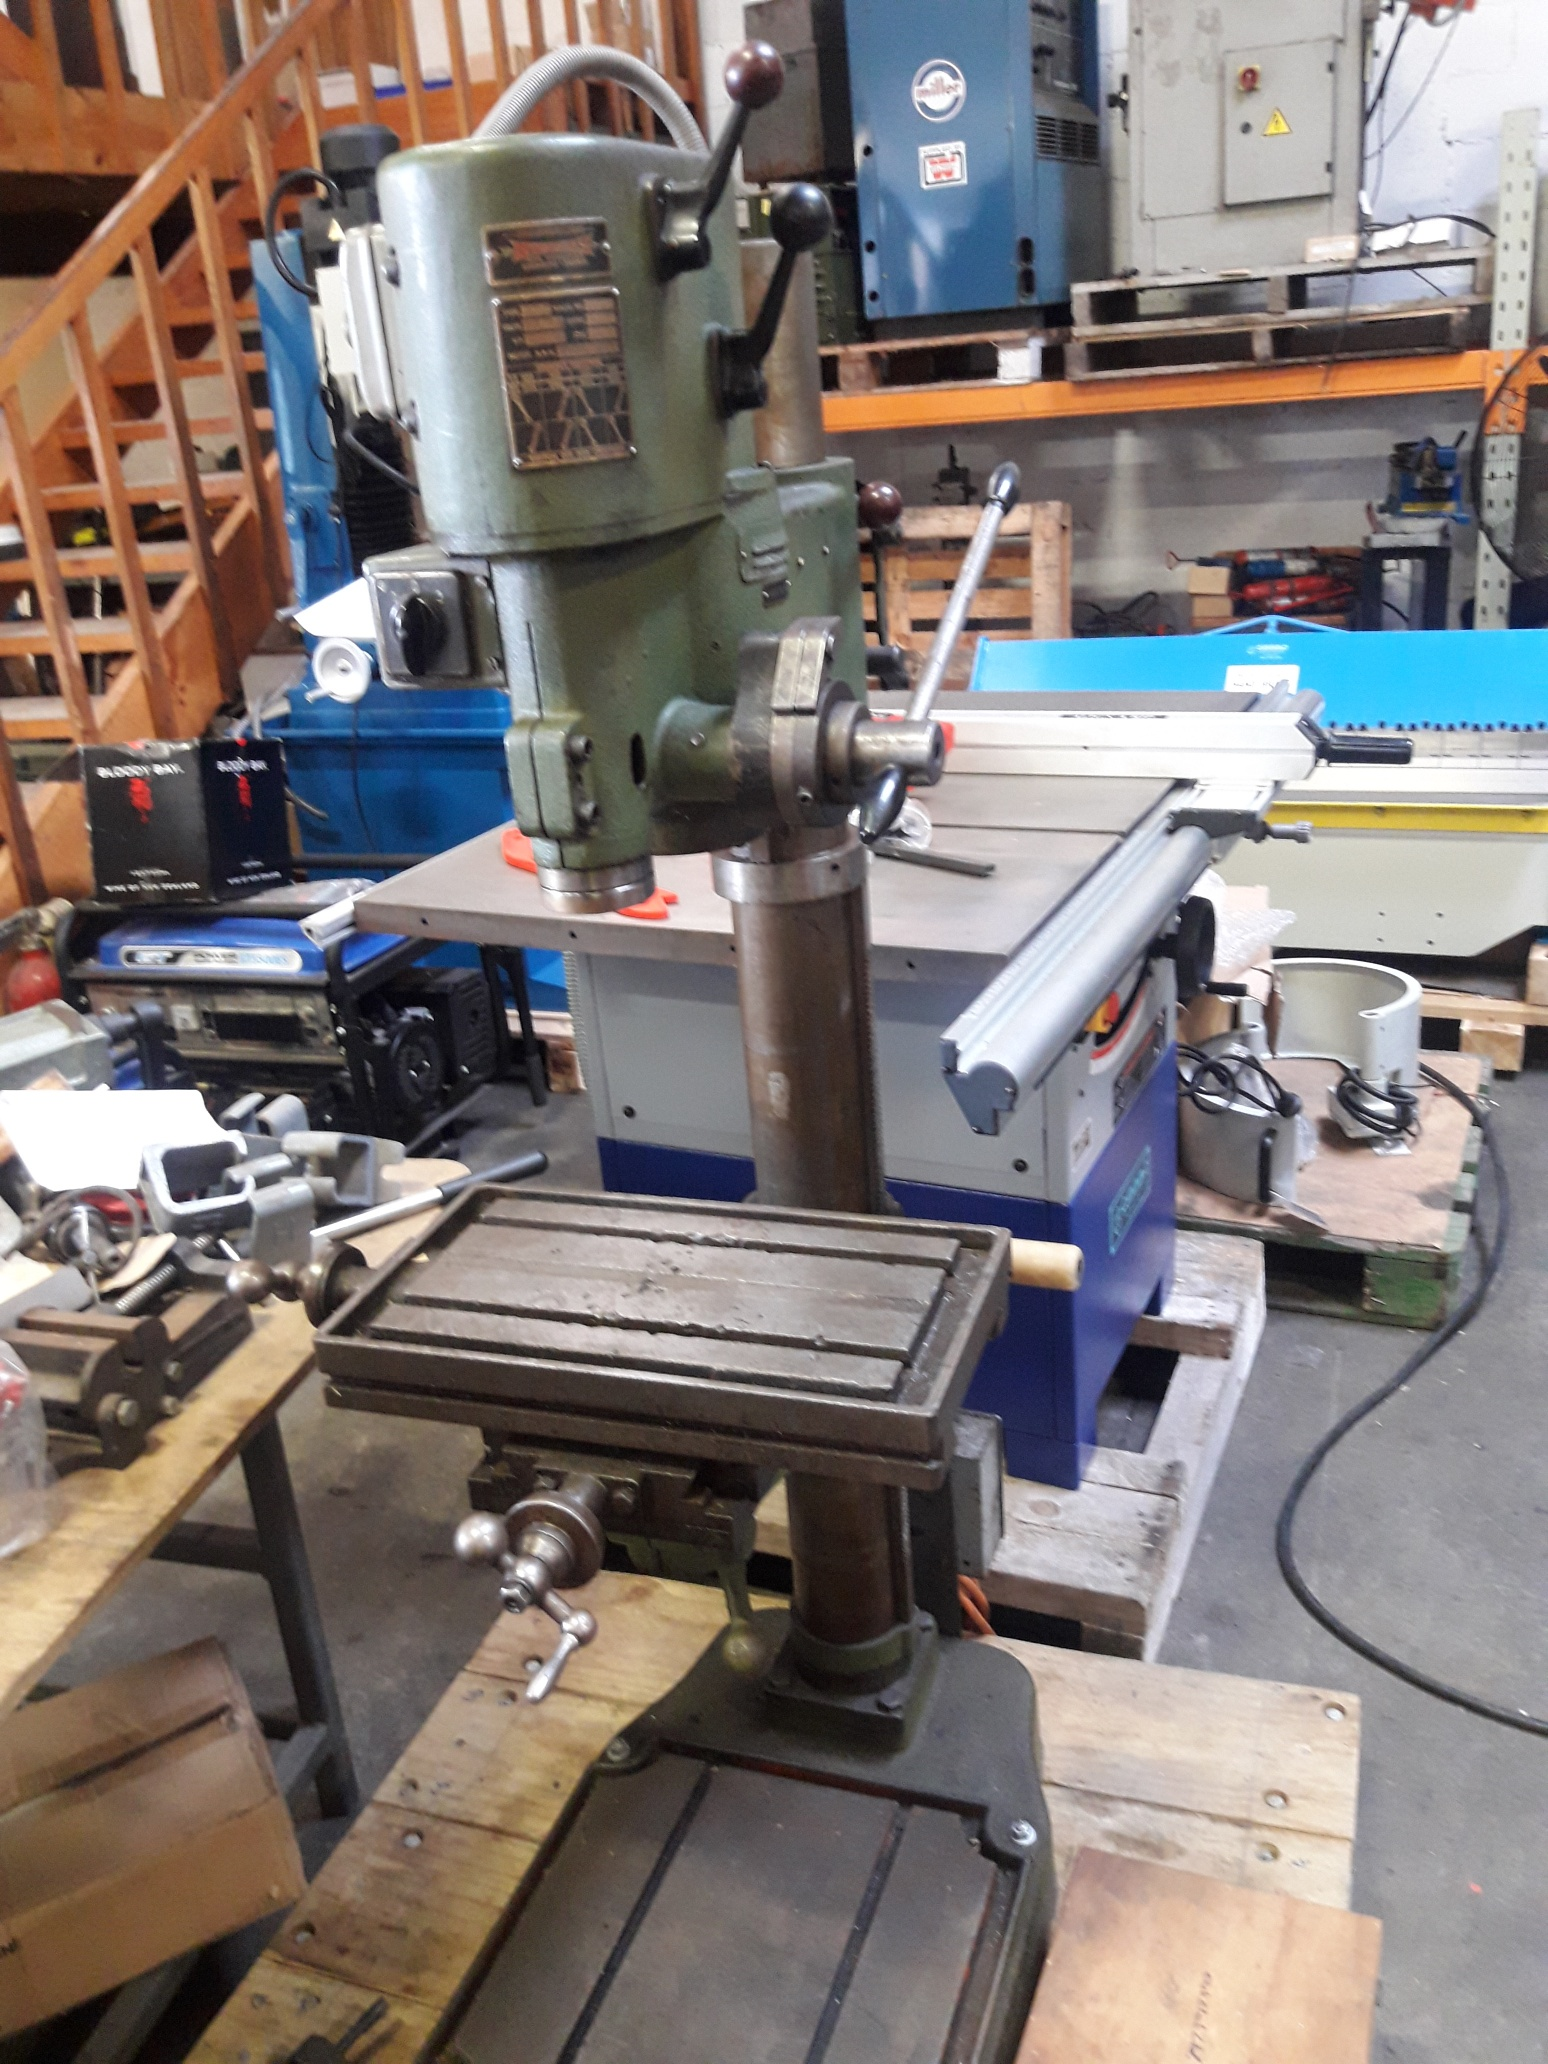 Geared head drill press, Strands (Sweden) 3 phase with compound table, MT3 tidy